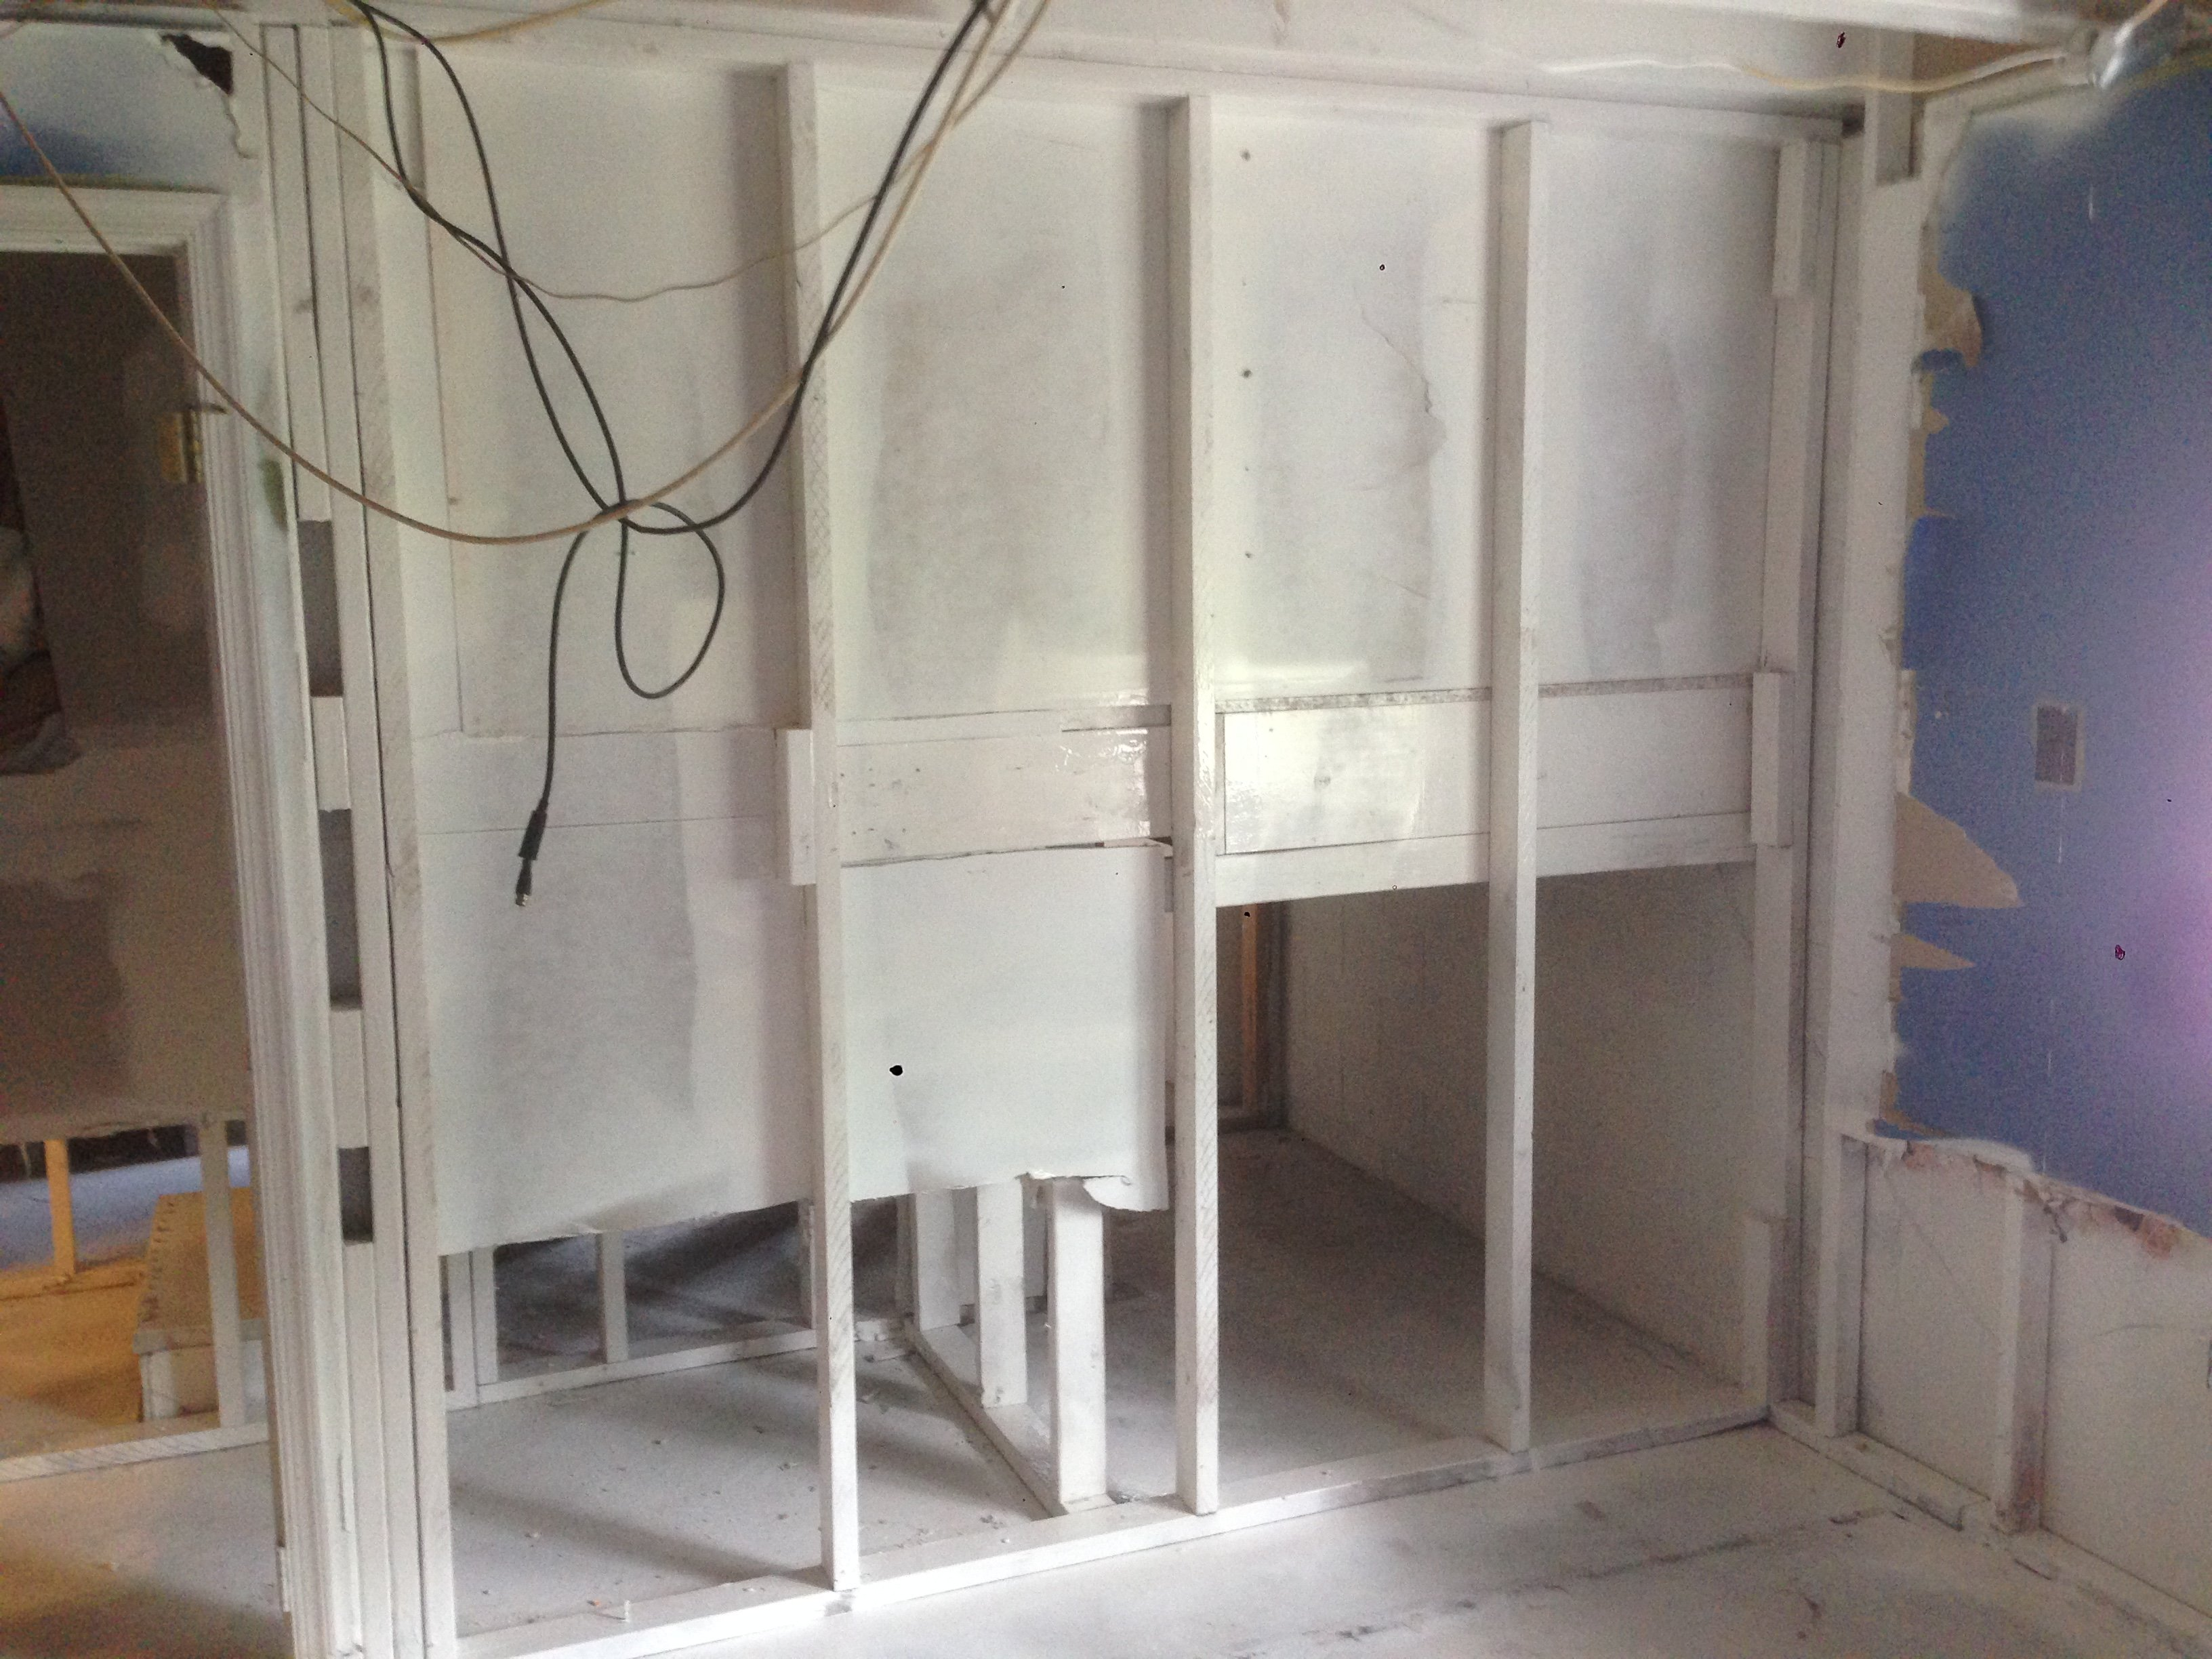 Coat mold remediated areas with a fungistatic coating